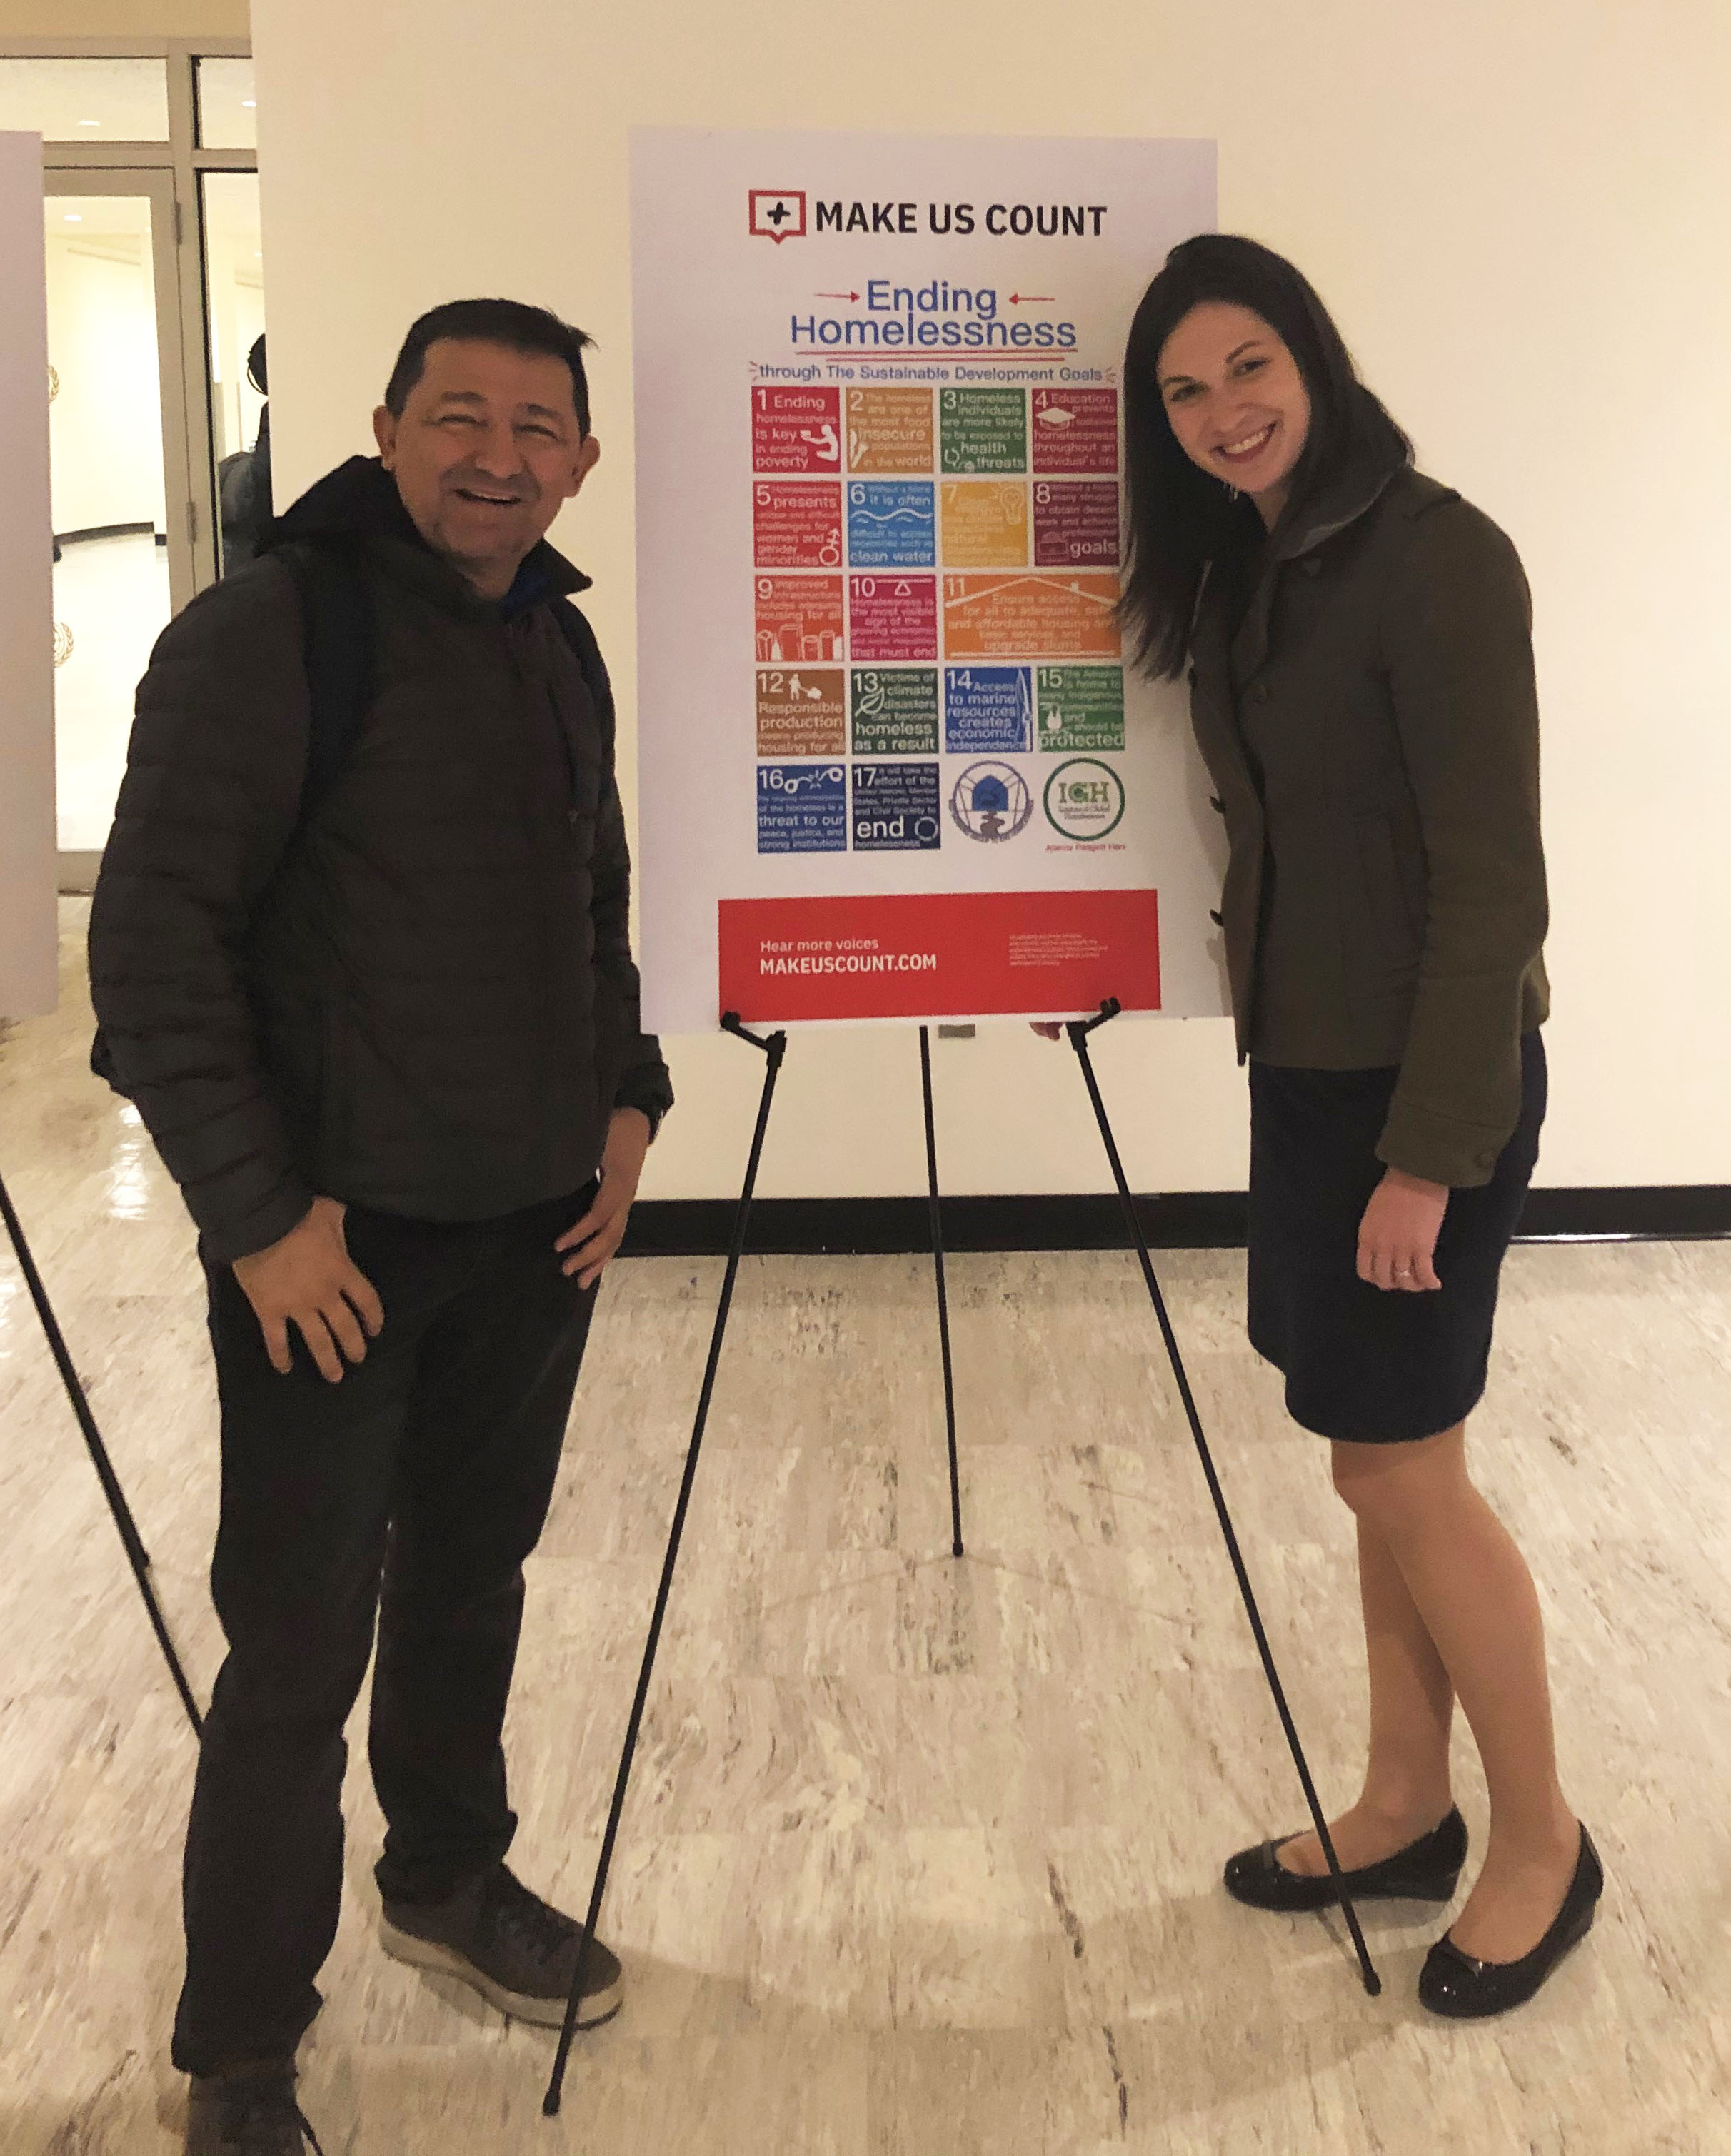 The Rev. Guillermo Campuzano, C.M., (left) and Lydia Stazen attended the UN meeting earlier this month